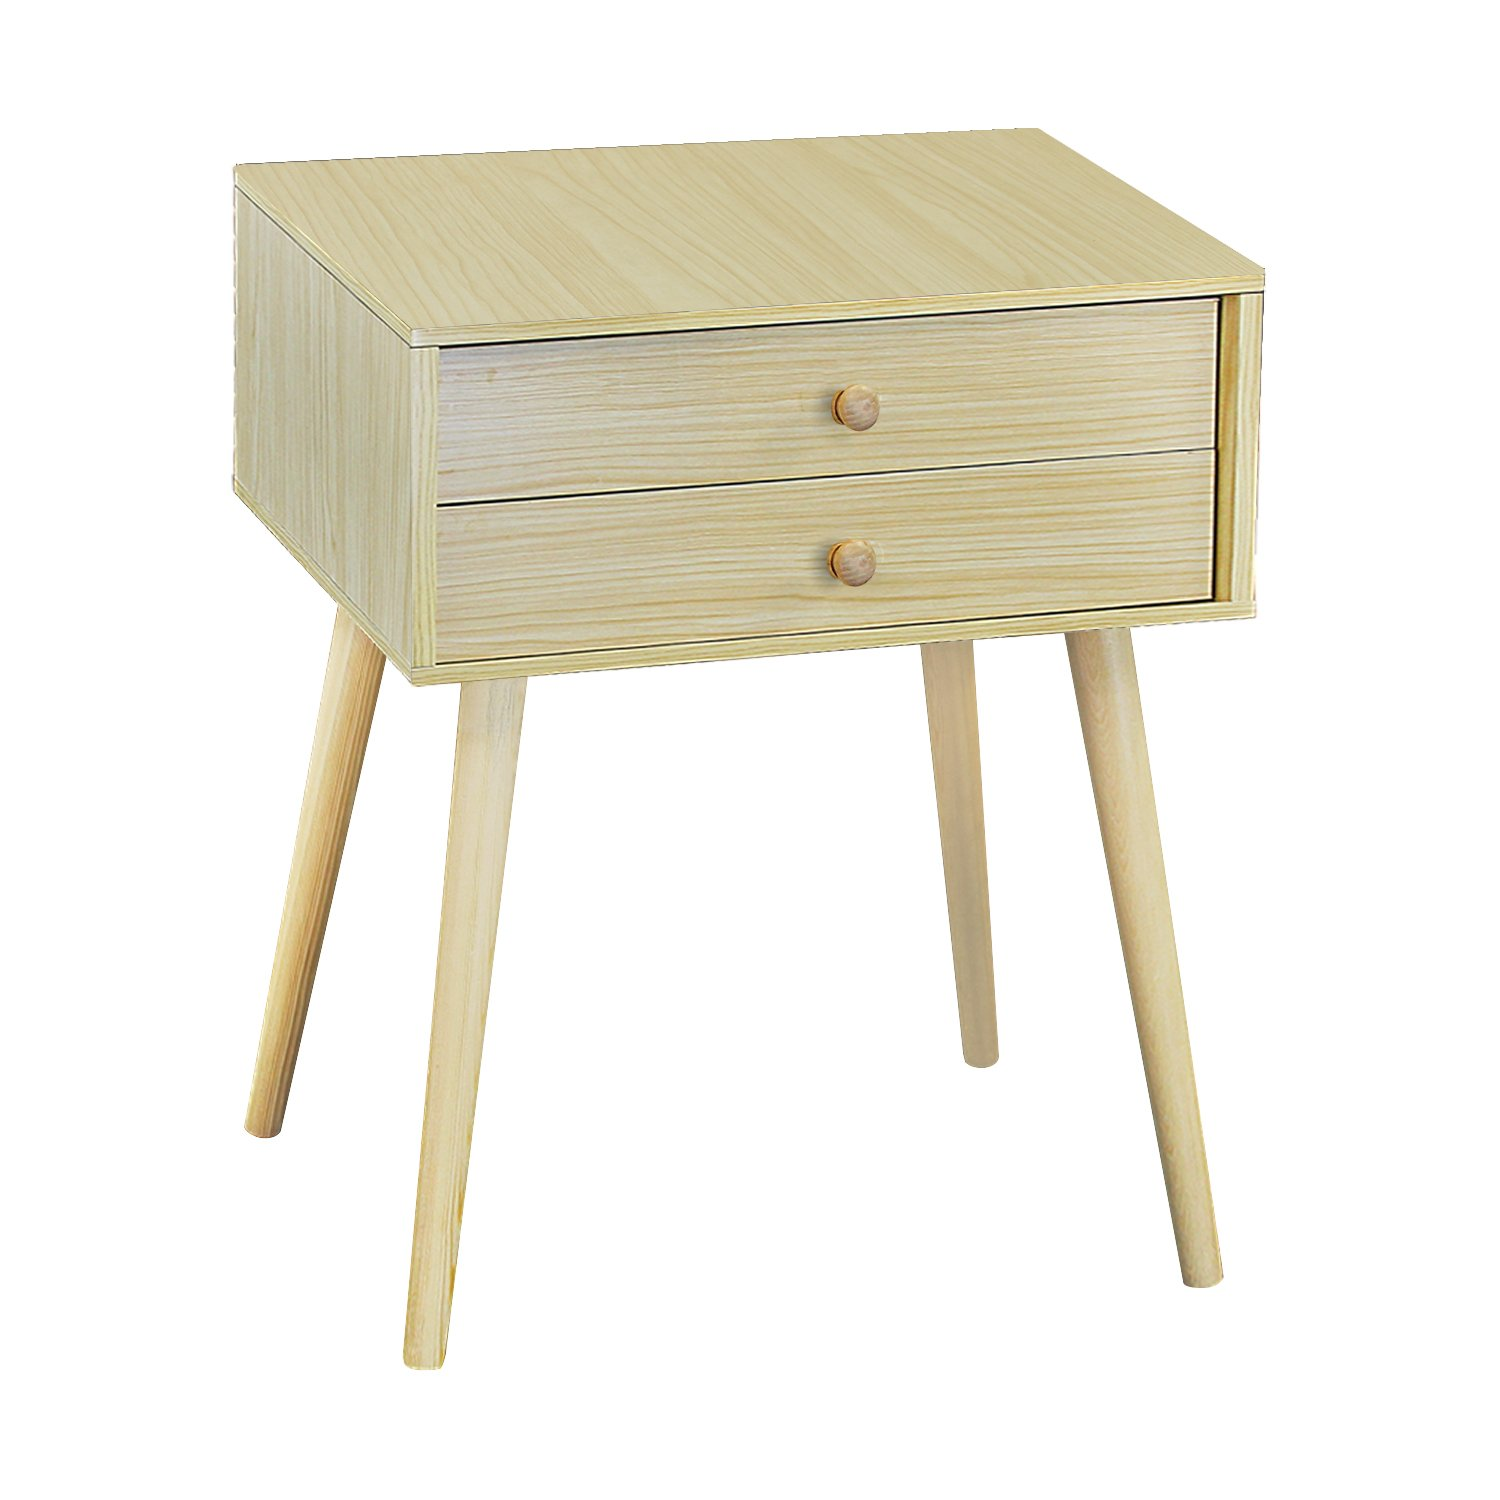 Natural Wood With 2 Tiers DL furniture Furniture004 Side End Nightstand Bedroom Livingroom Table Cabinet 2 Drawers   Natural Wood & White, Tiers